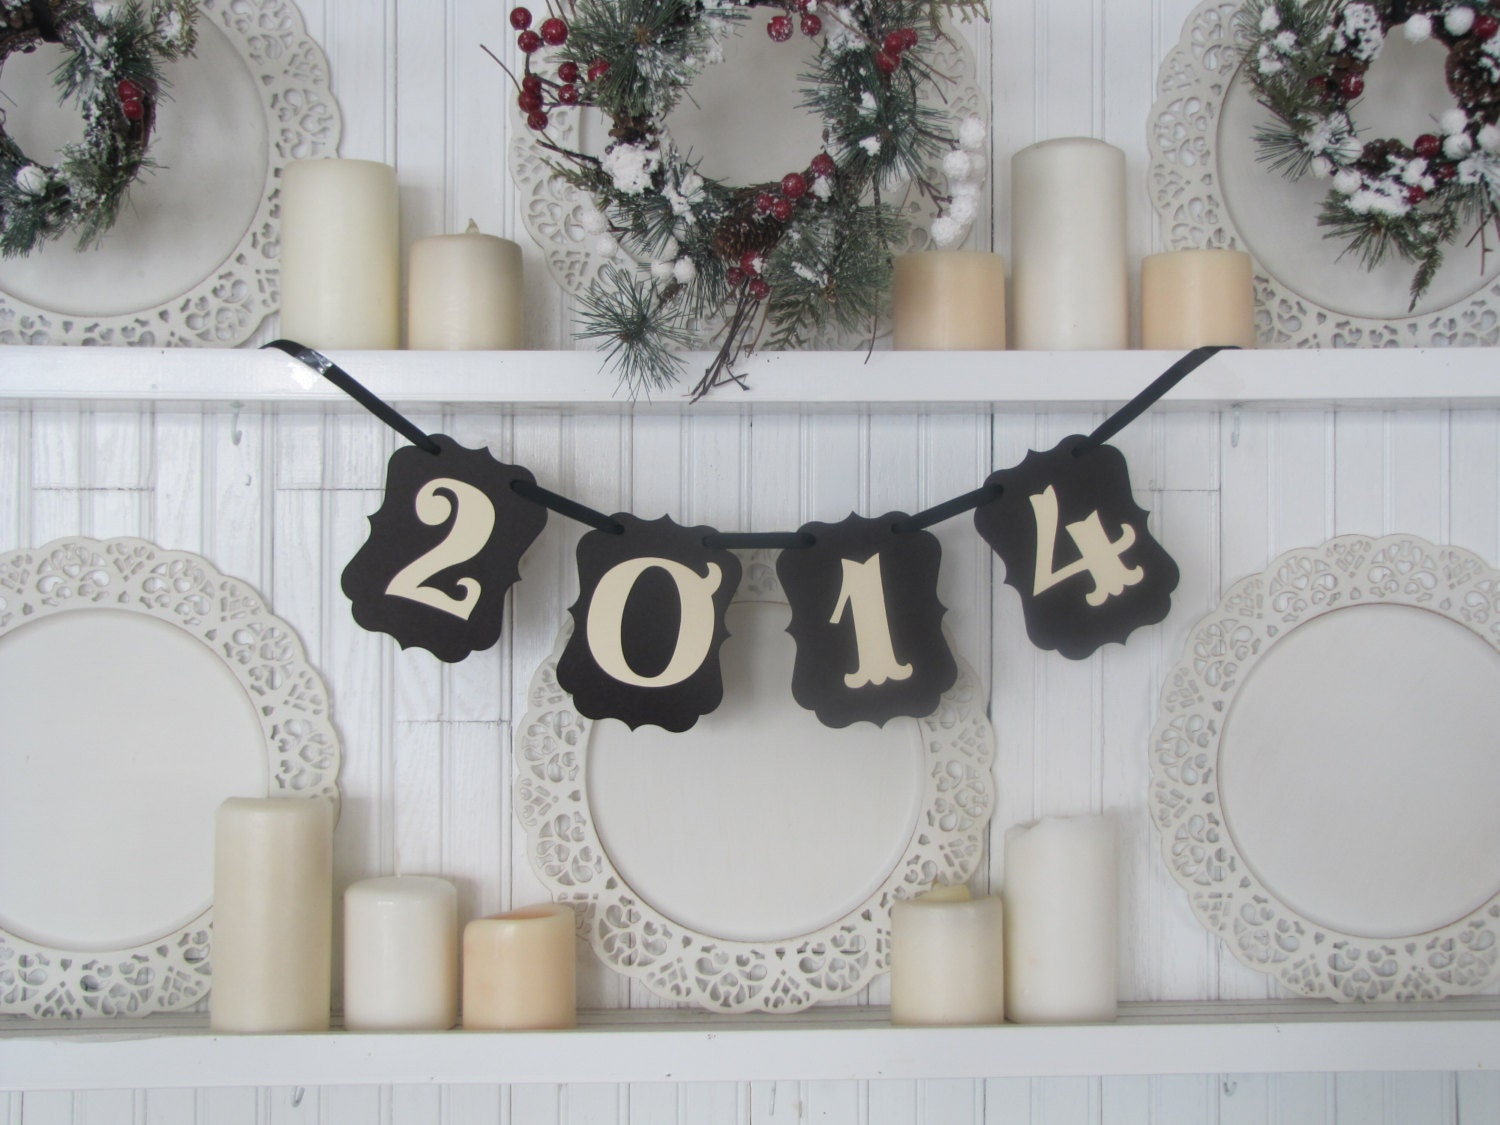 2014 Banner New Year s Eve and Photo Prop - ParamoreArtWorks